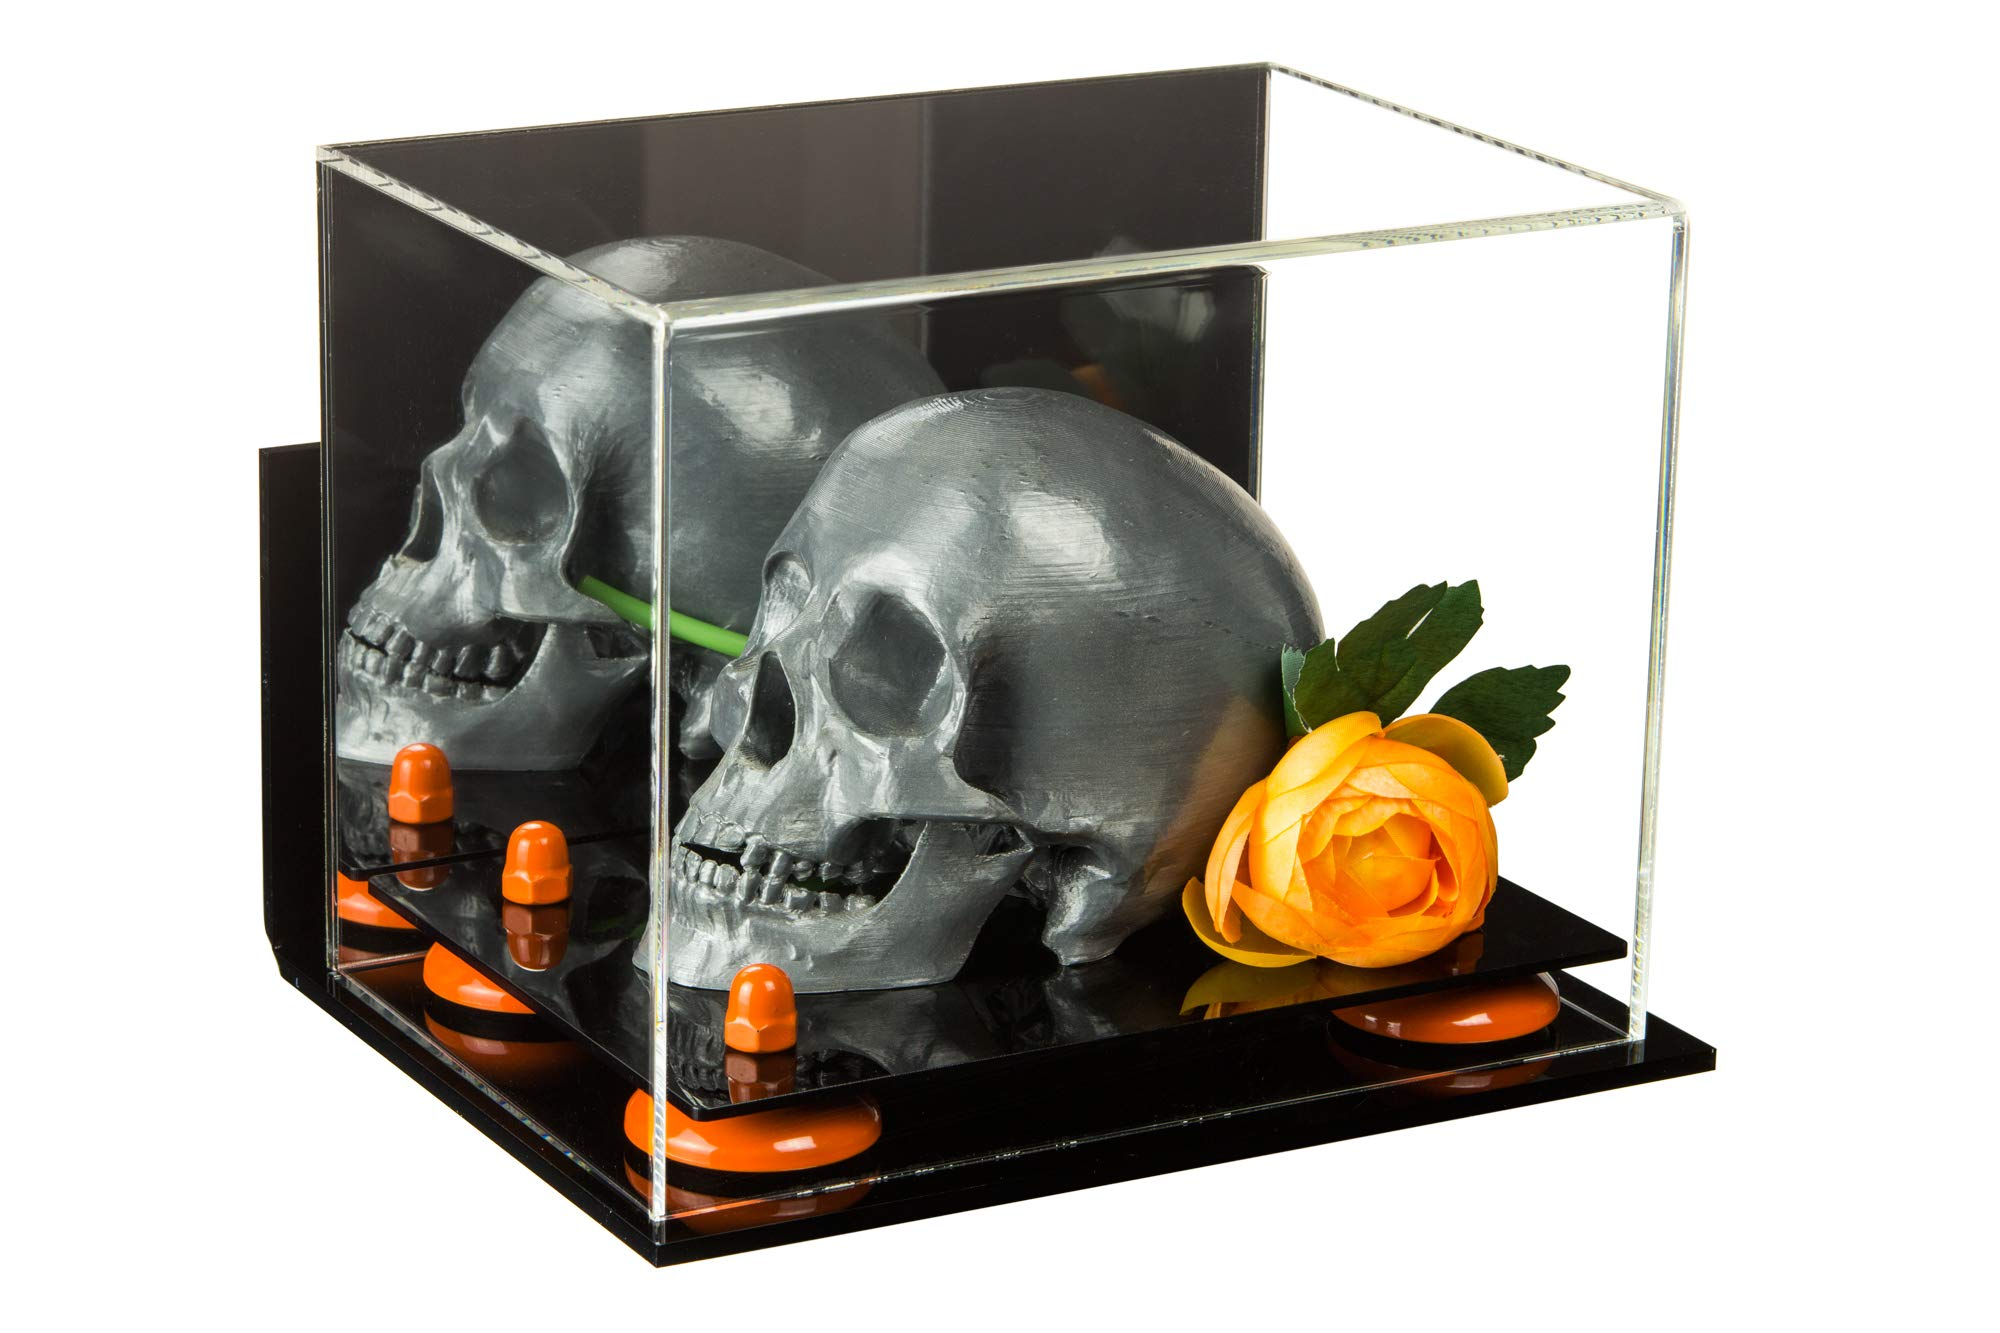 Versatile Deluxe Acrylic Display Case - Small Rectangle Box with Mirror, Wall Mount and Orange Risers 8.25'' x 5.5'' x 6'' (A003-OR)